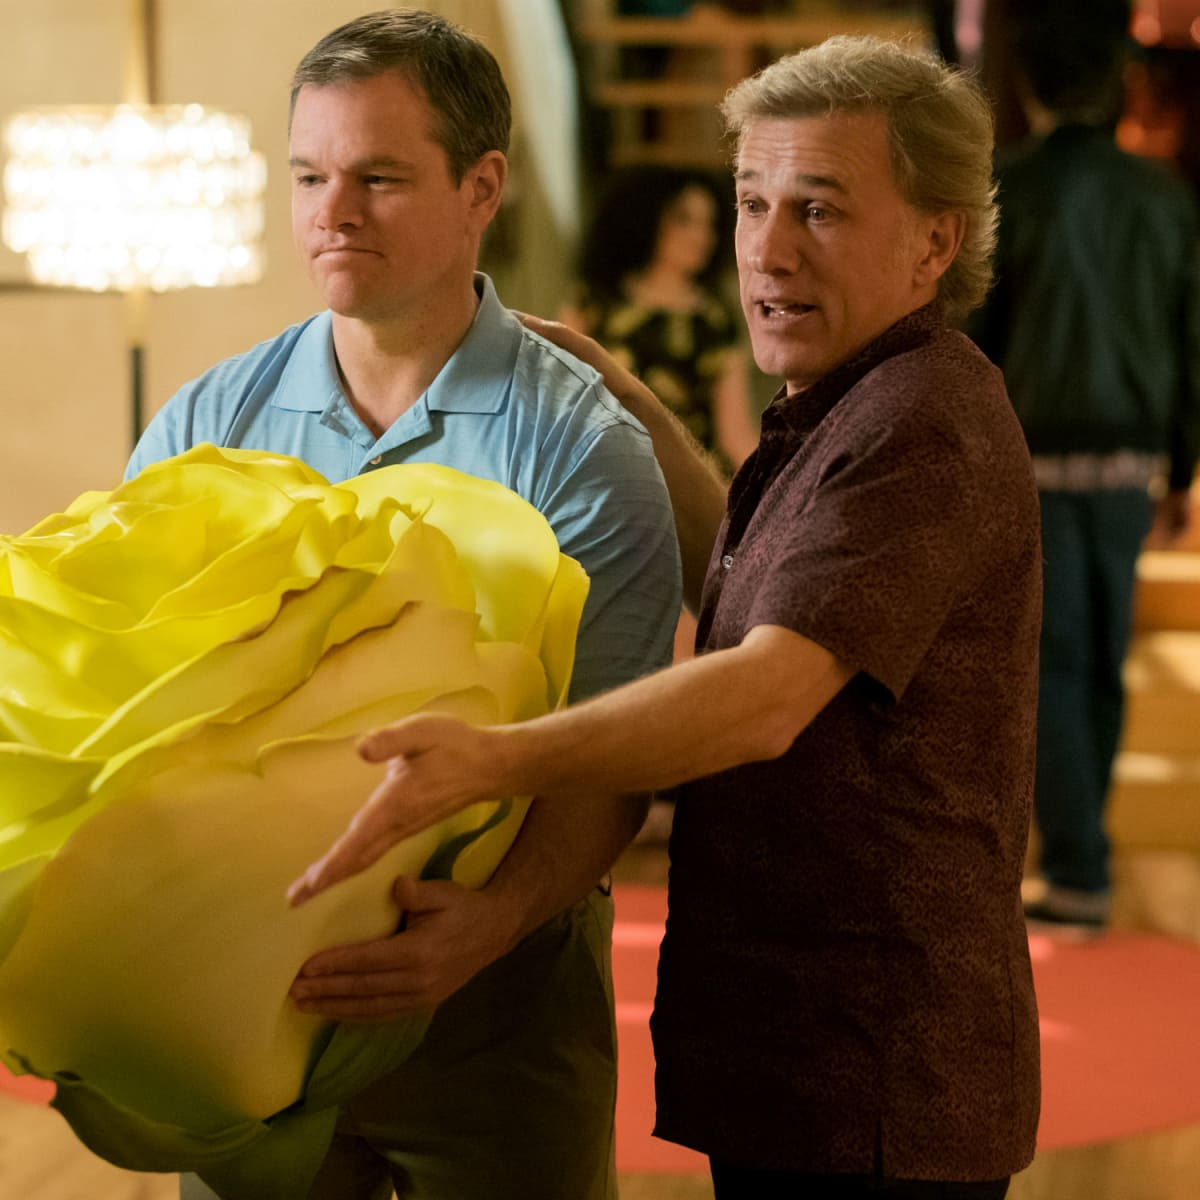 Matt Damon and Christoph Waltz in Downsizing